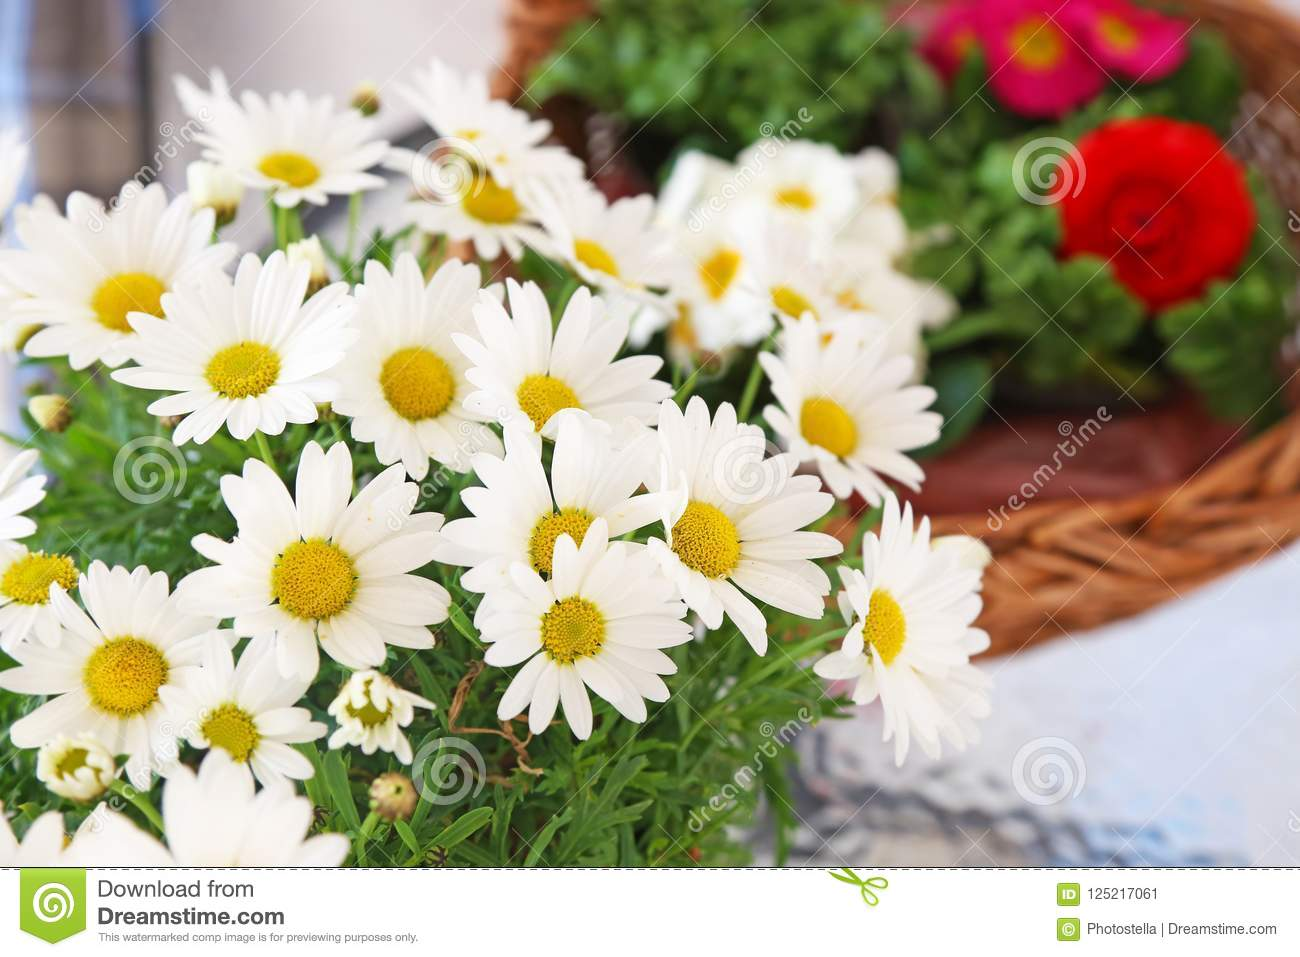 blooming white daisies spring flowers blossom nature stock image